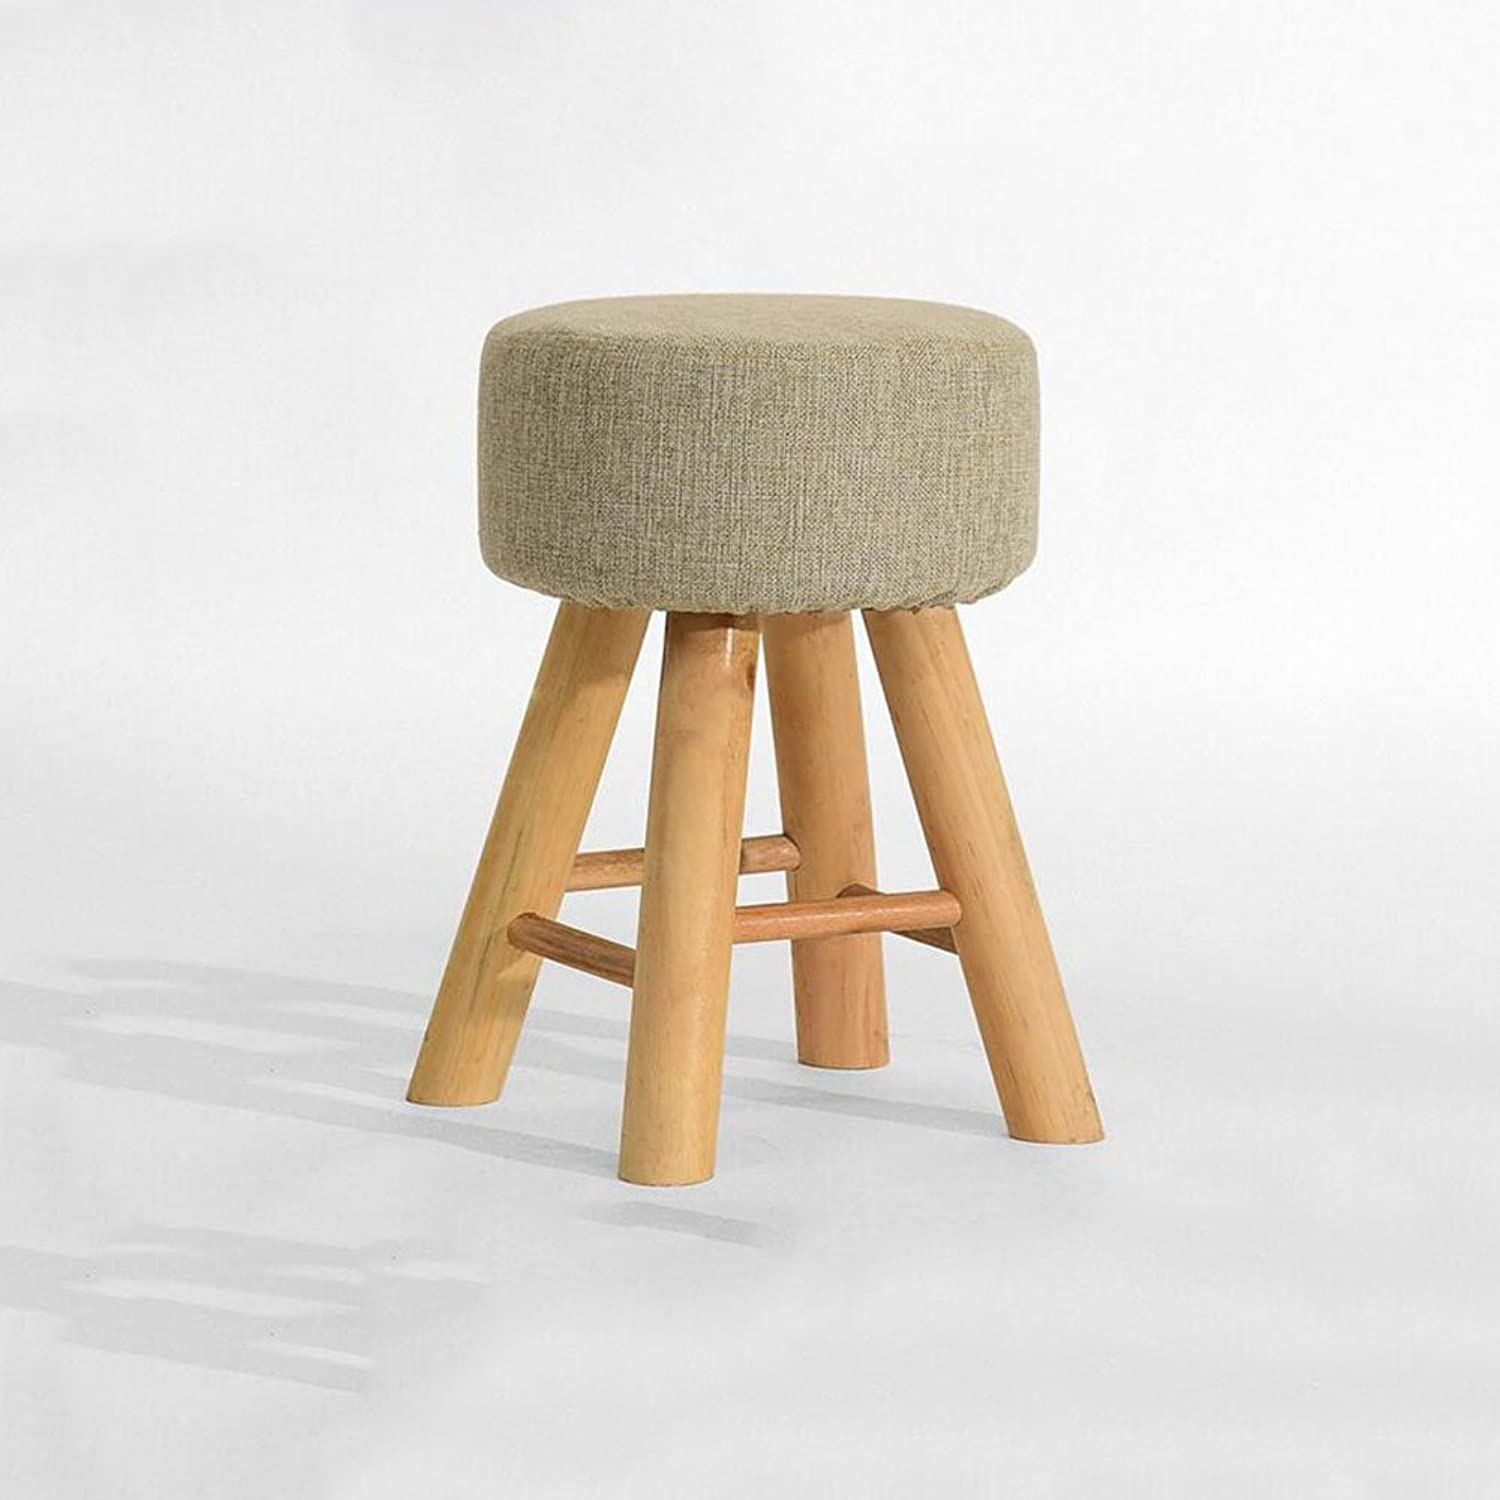 CJC Wooden Stool Household Removable seat Cover Easy to Clean Makeup Stool Home Office Furniture Kitchen (color   2)